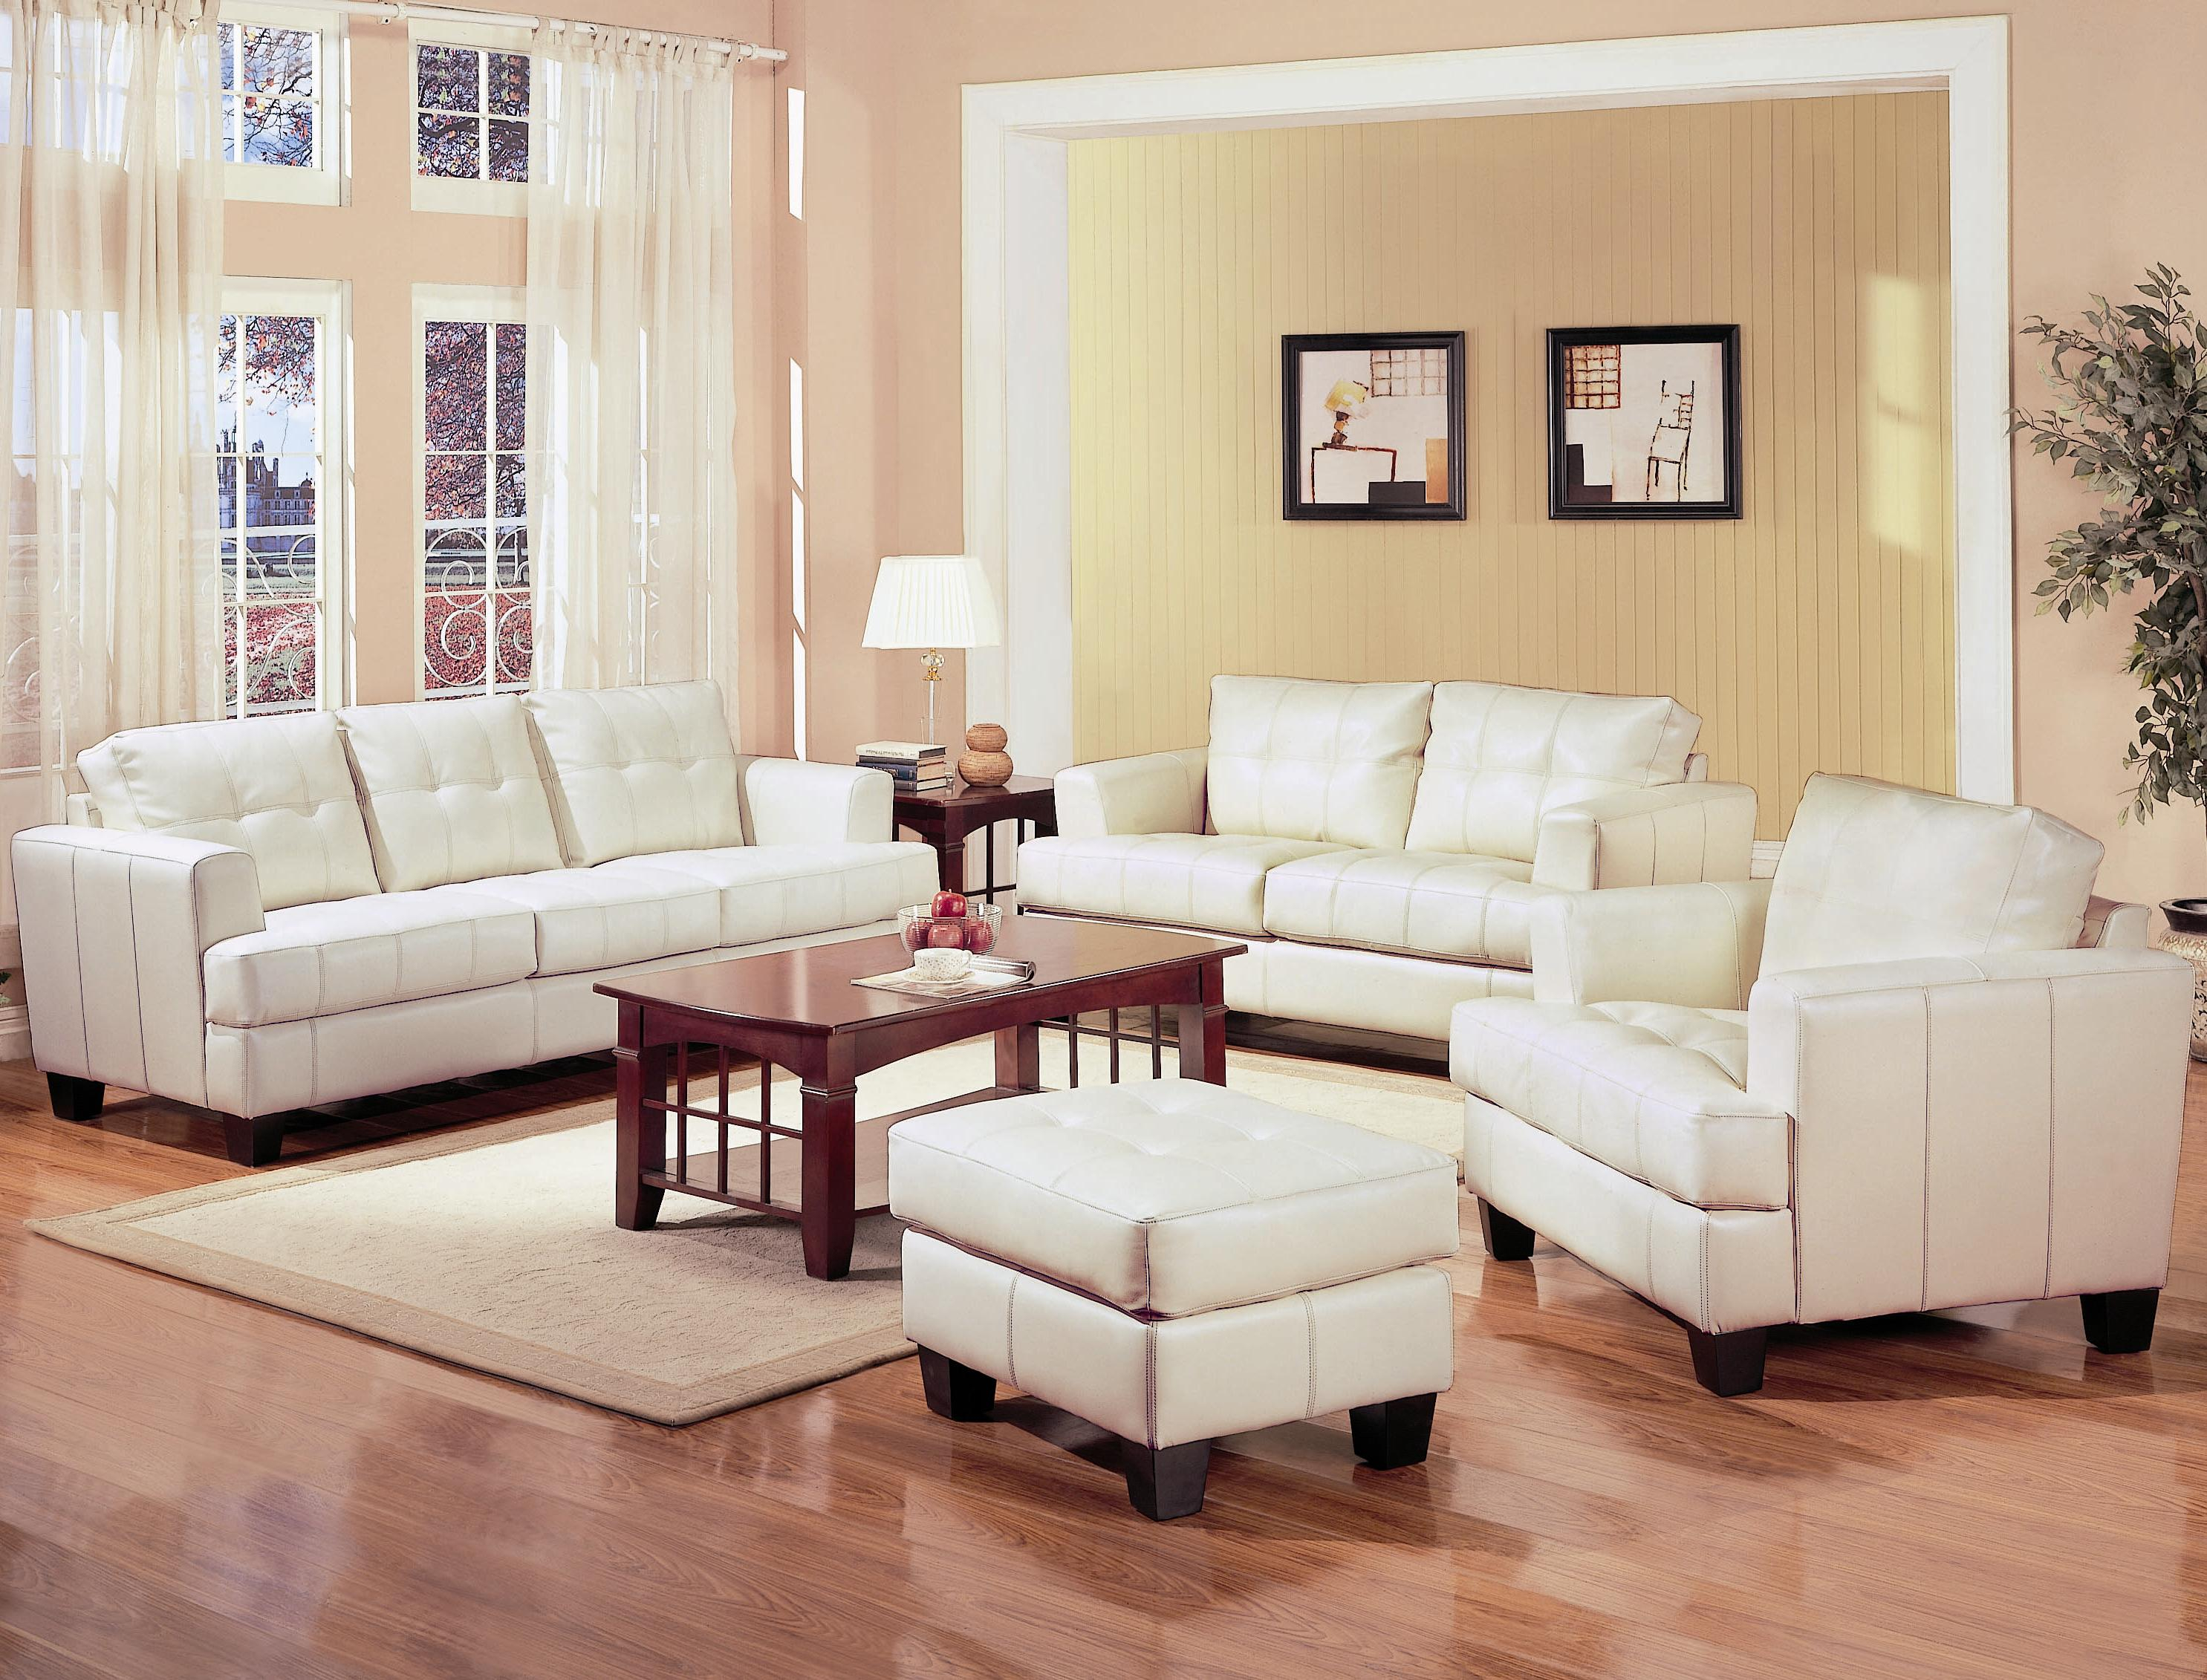 Leather Sofas Co 501691 for Beige Leather Living Room Set